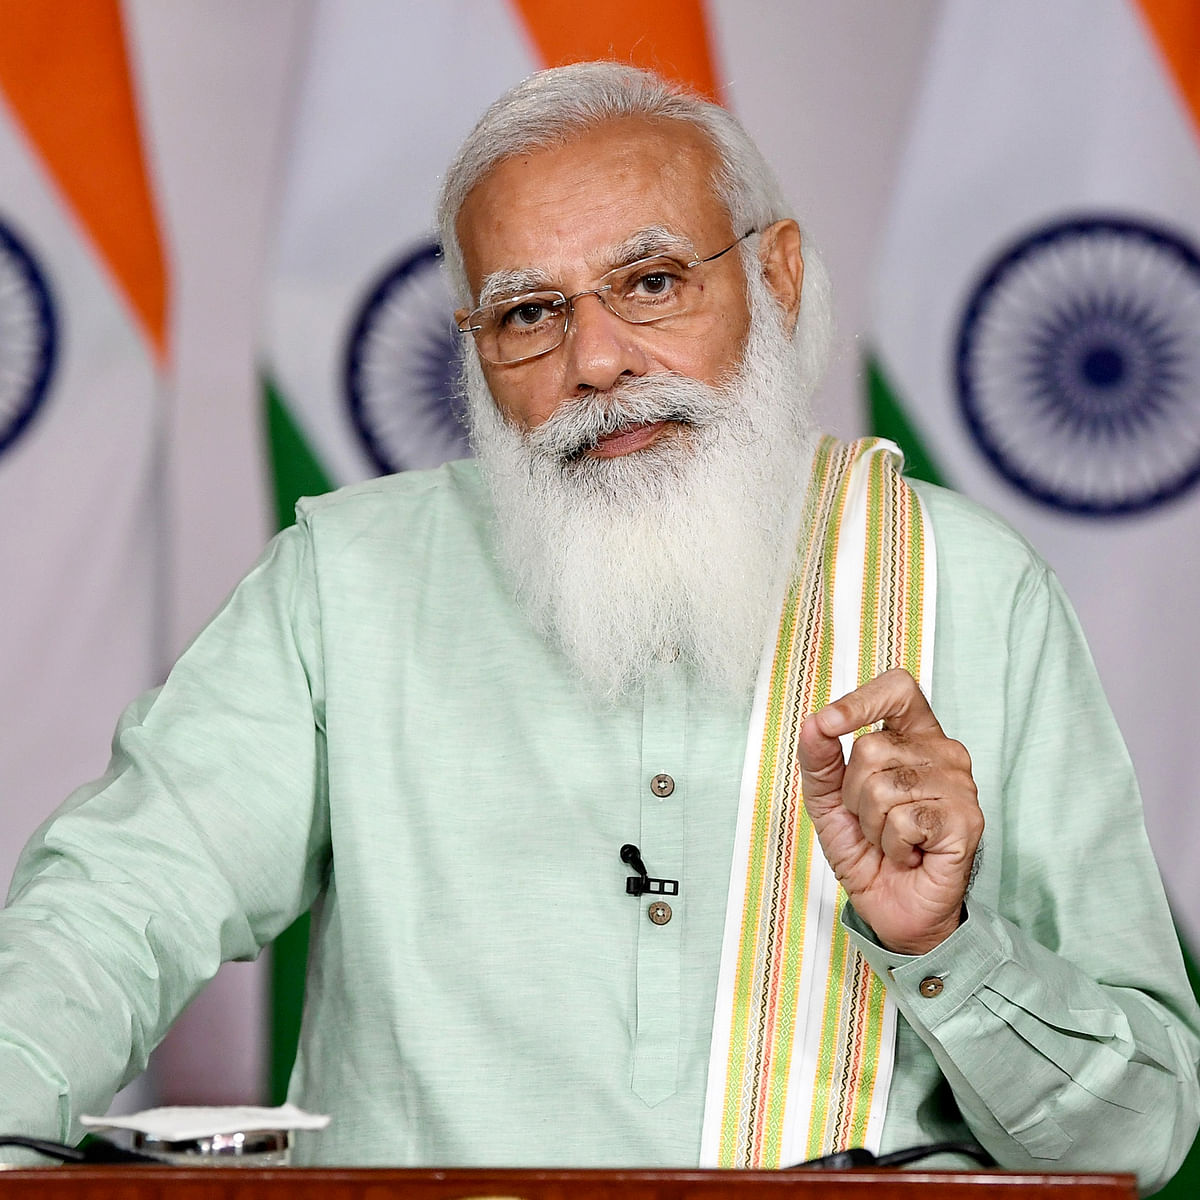 'He was an upcoming leader with much potential': PM Modi condoles demise of Rajya Sabha MP Rajeev Satav